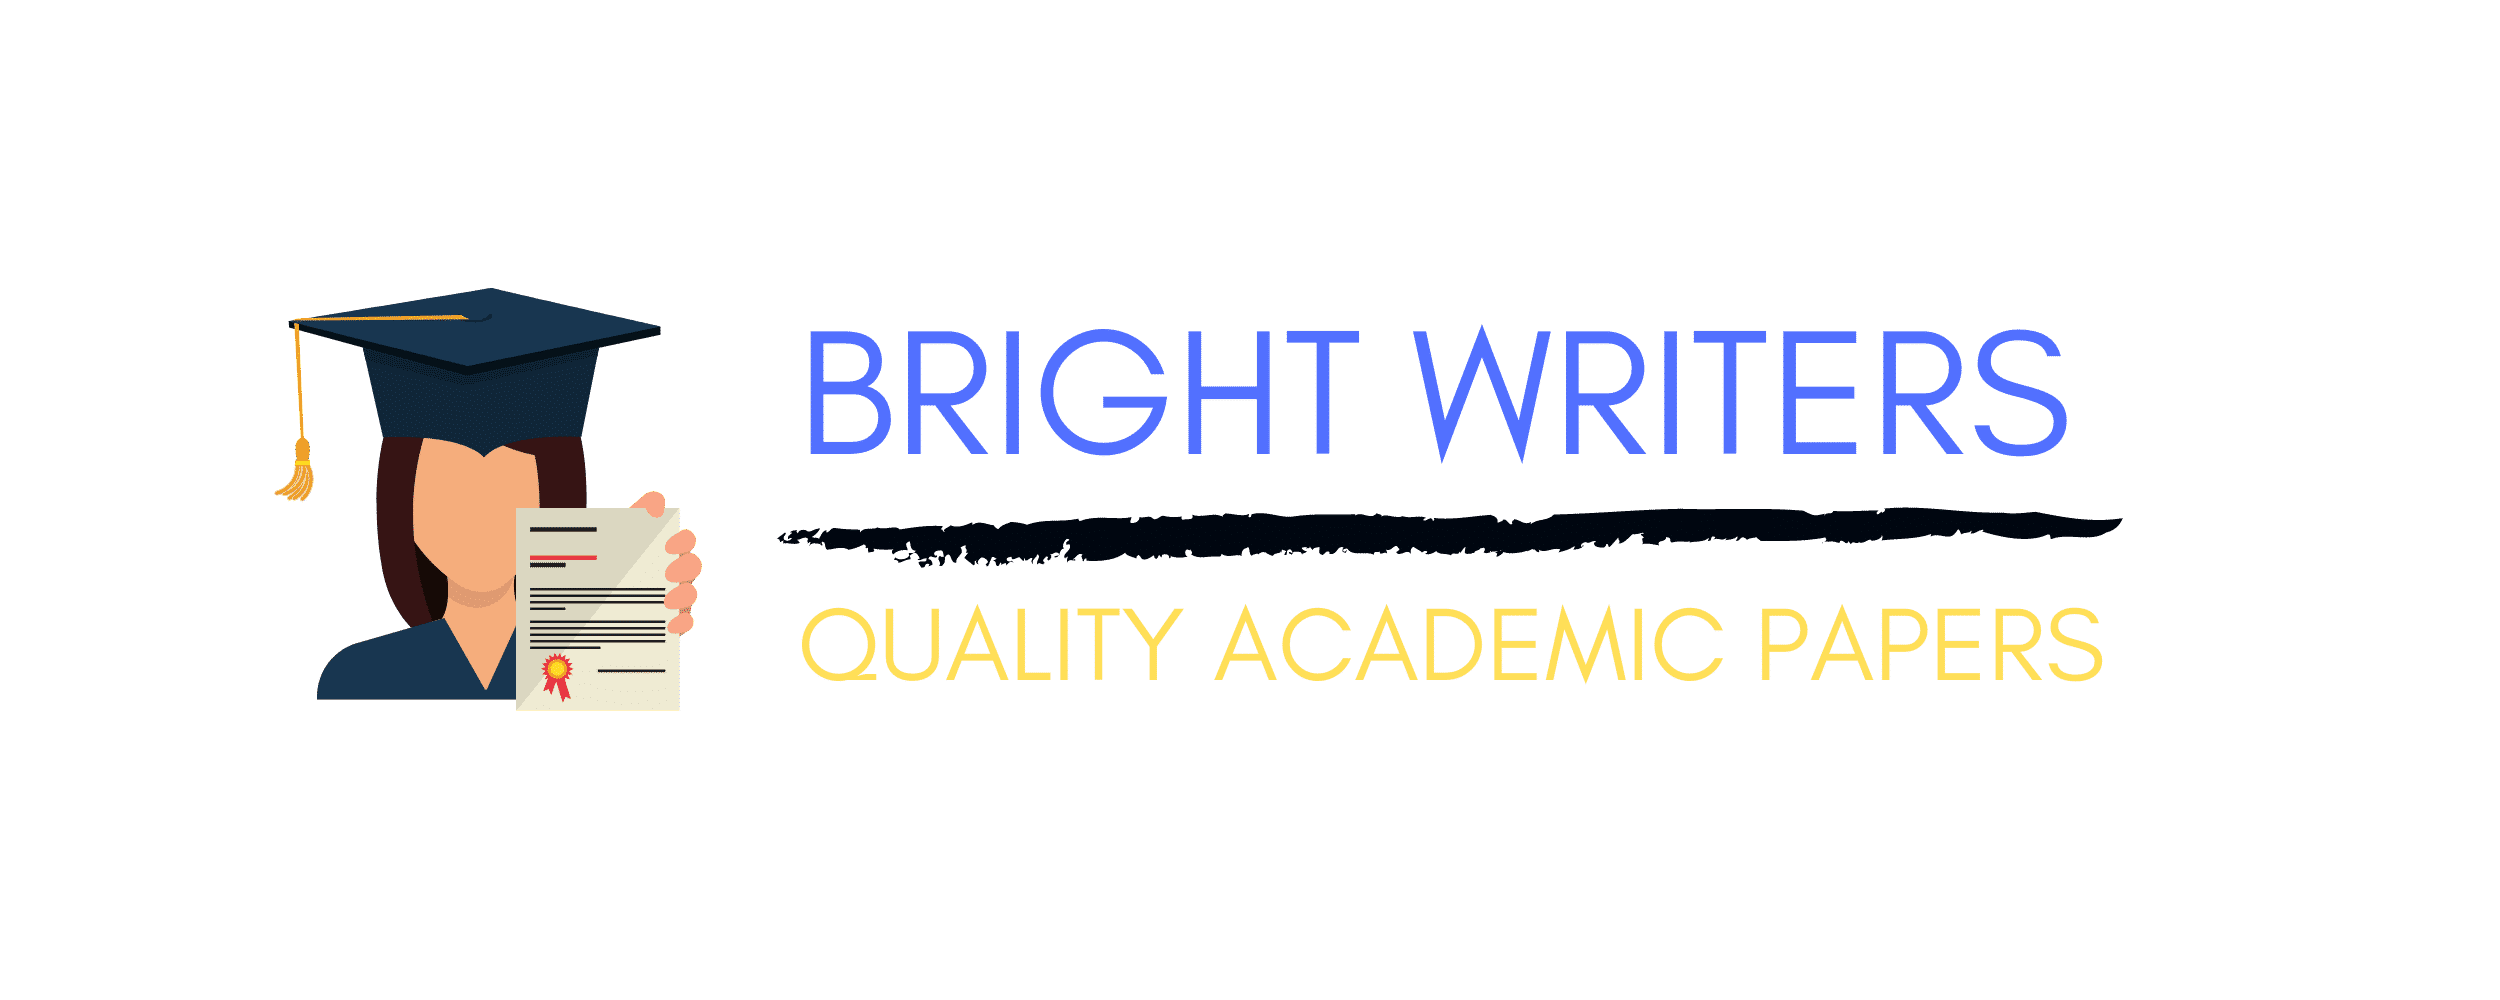 Bright Writers